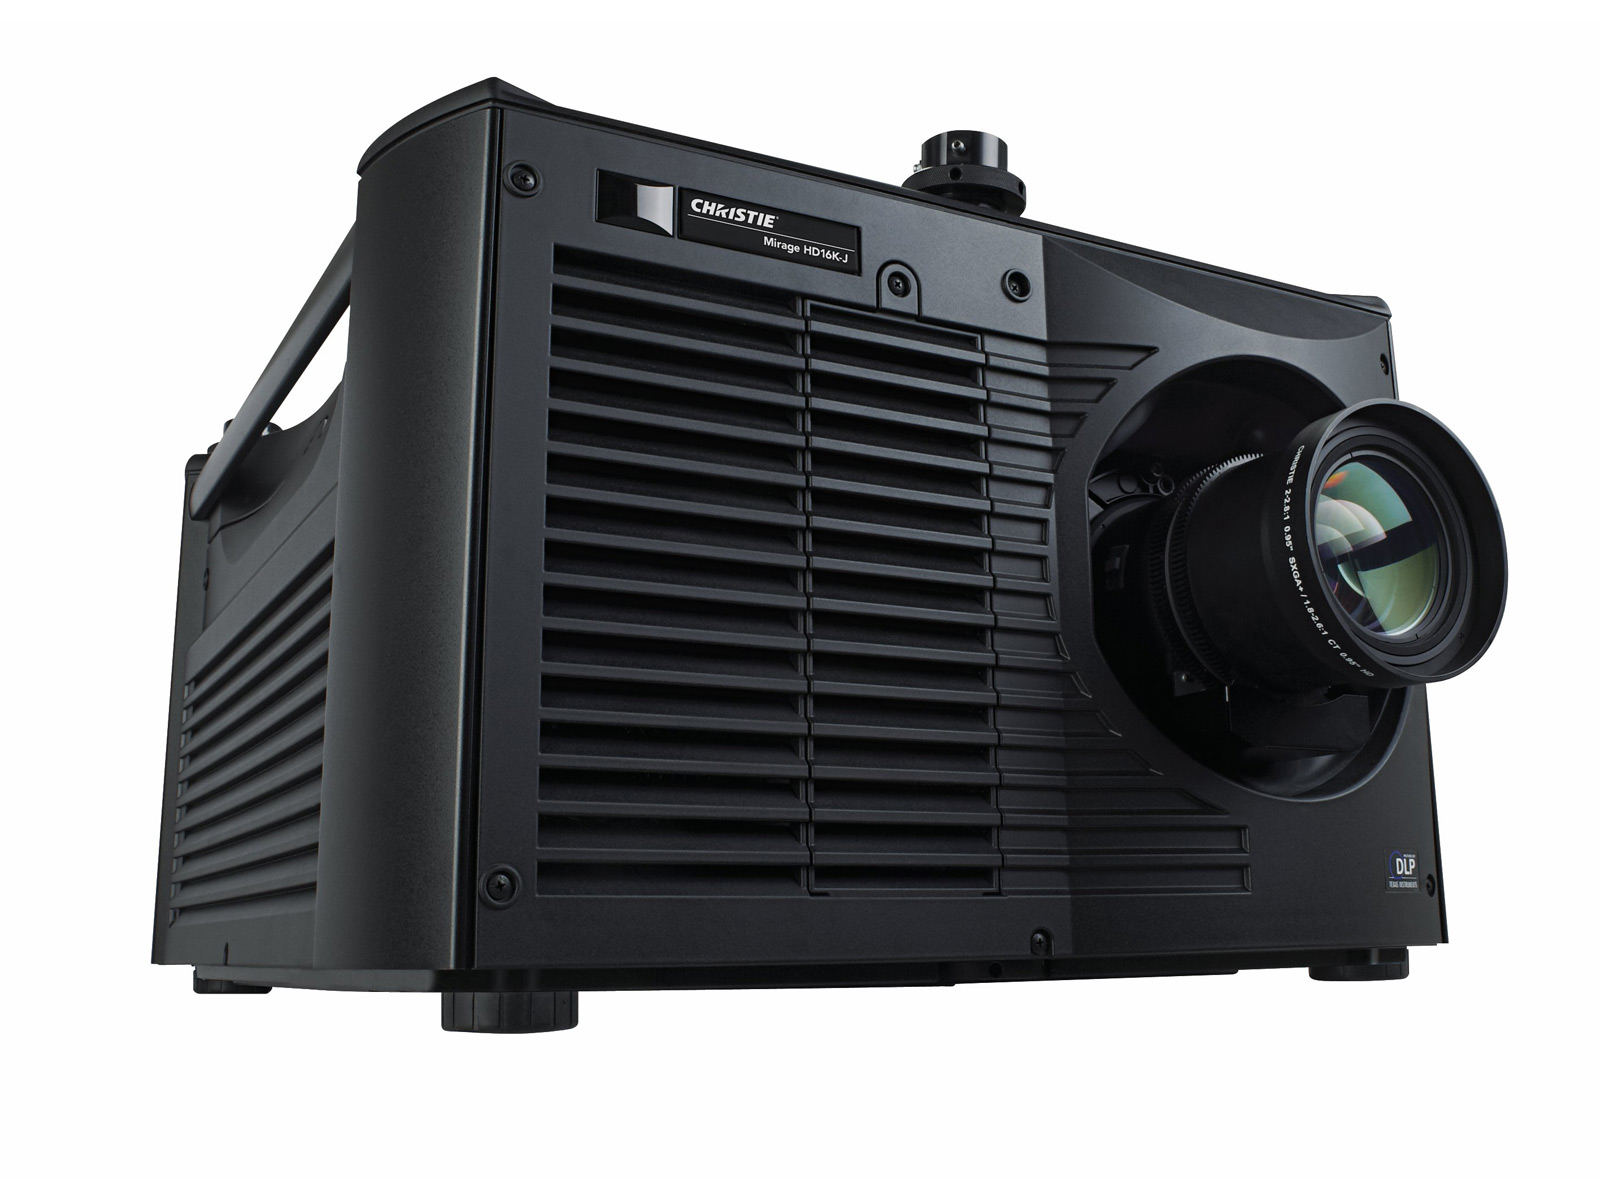 Christie Mirage HD16K-J 3D 3DLP projector | 132-014128-XX